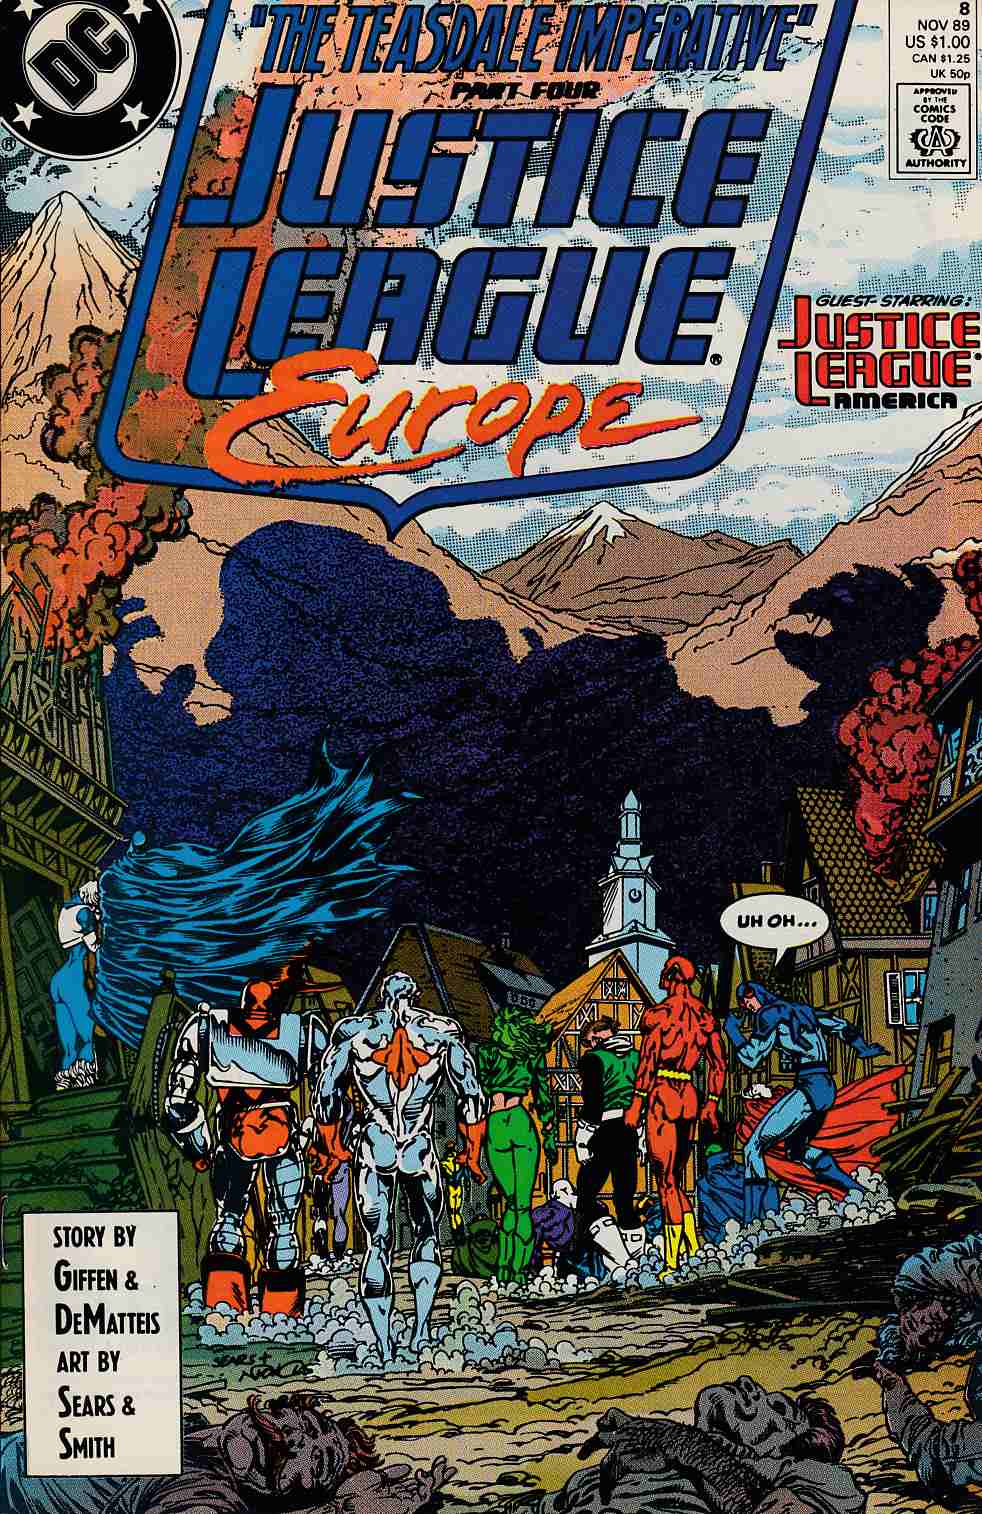 Justice League Europe #8 Near Mint (9.4) [DC Comic] LARGE